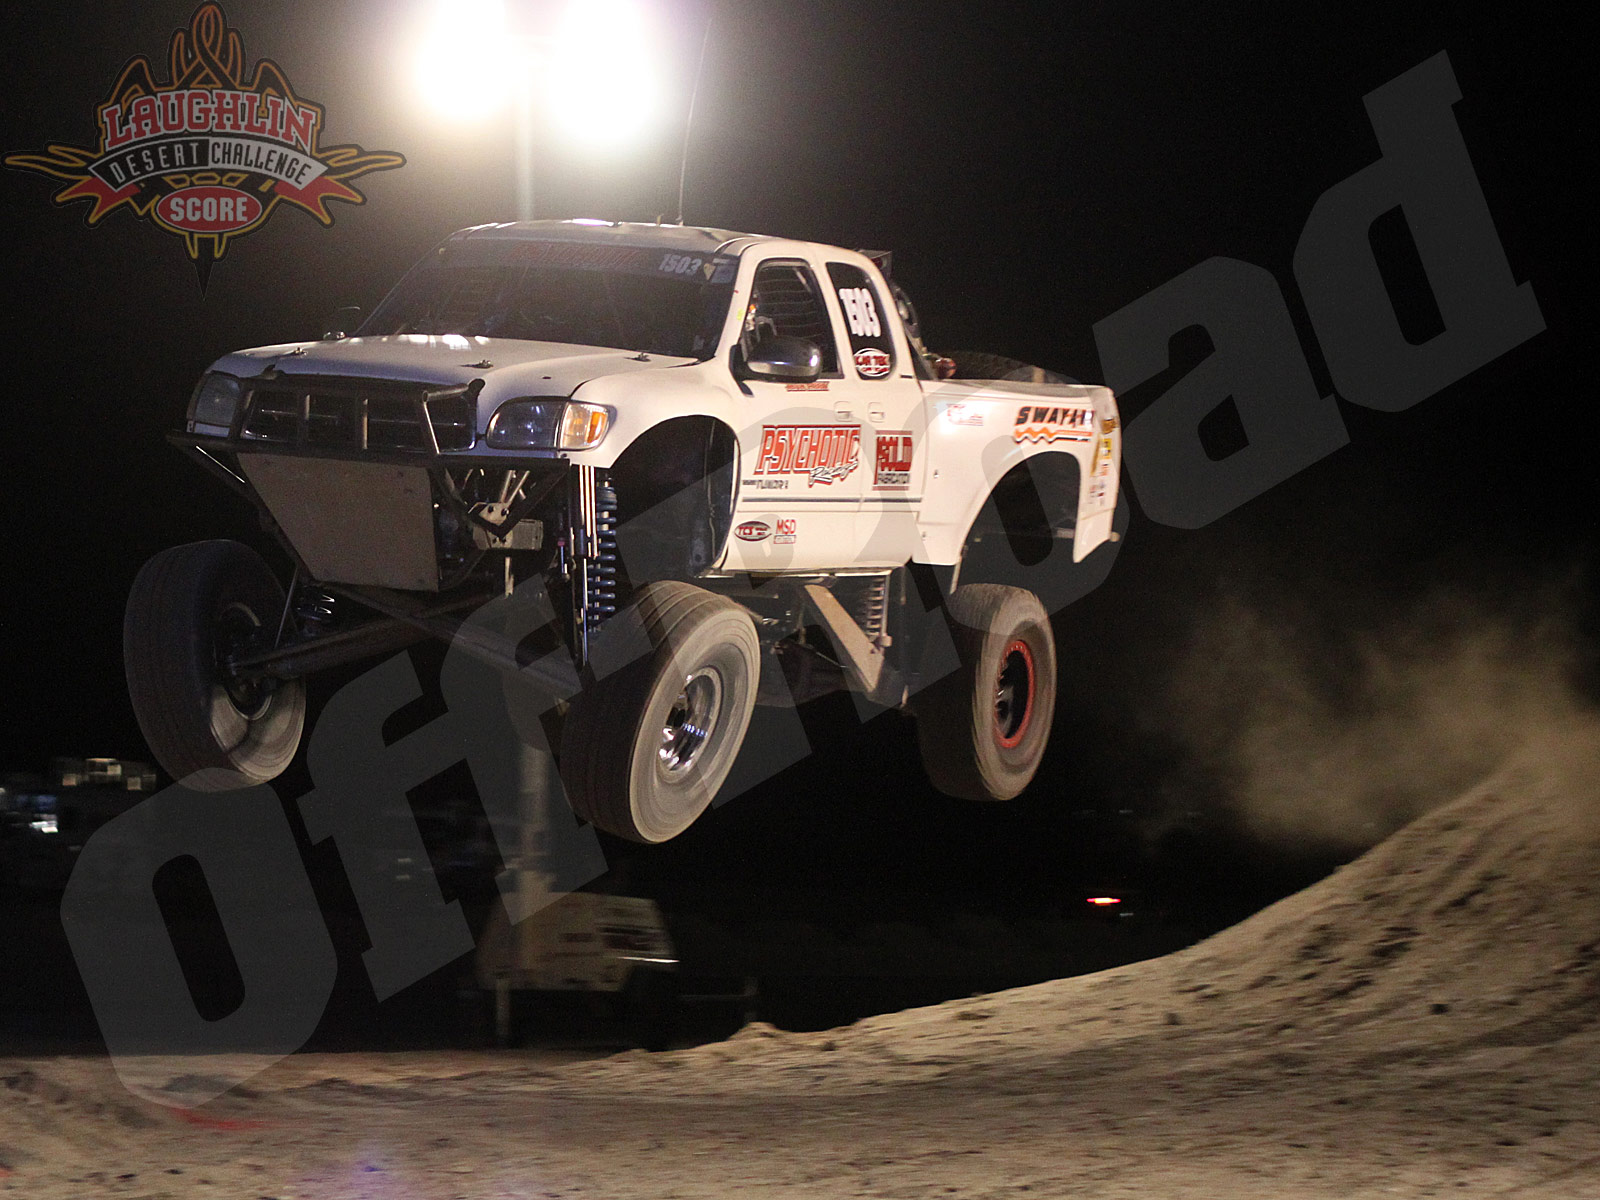 012611or 5216+2011 score laughlin desert challenge+laughlin leap